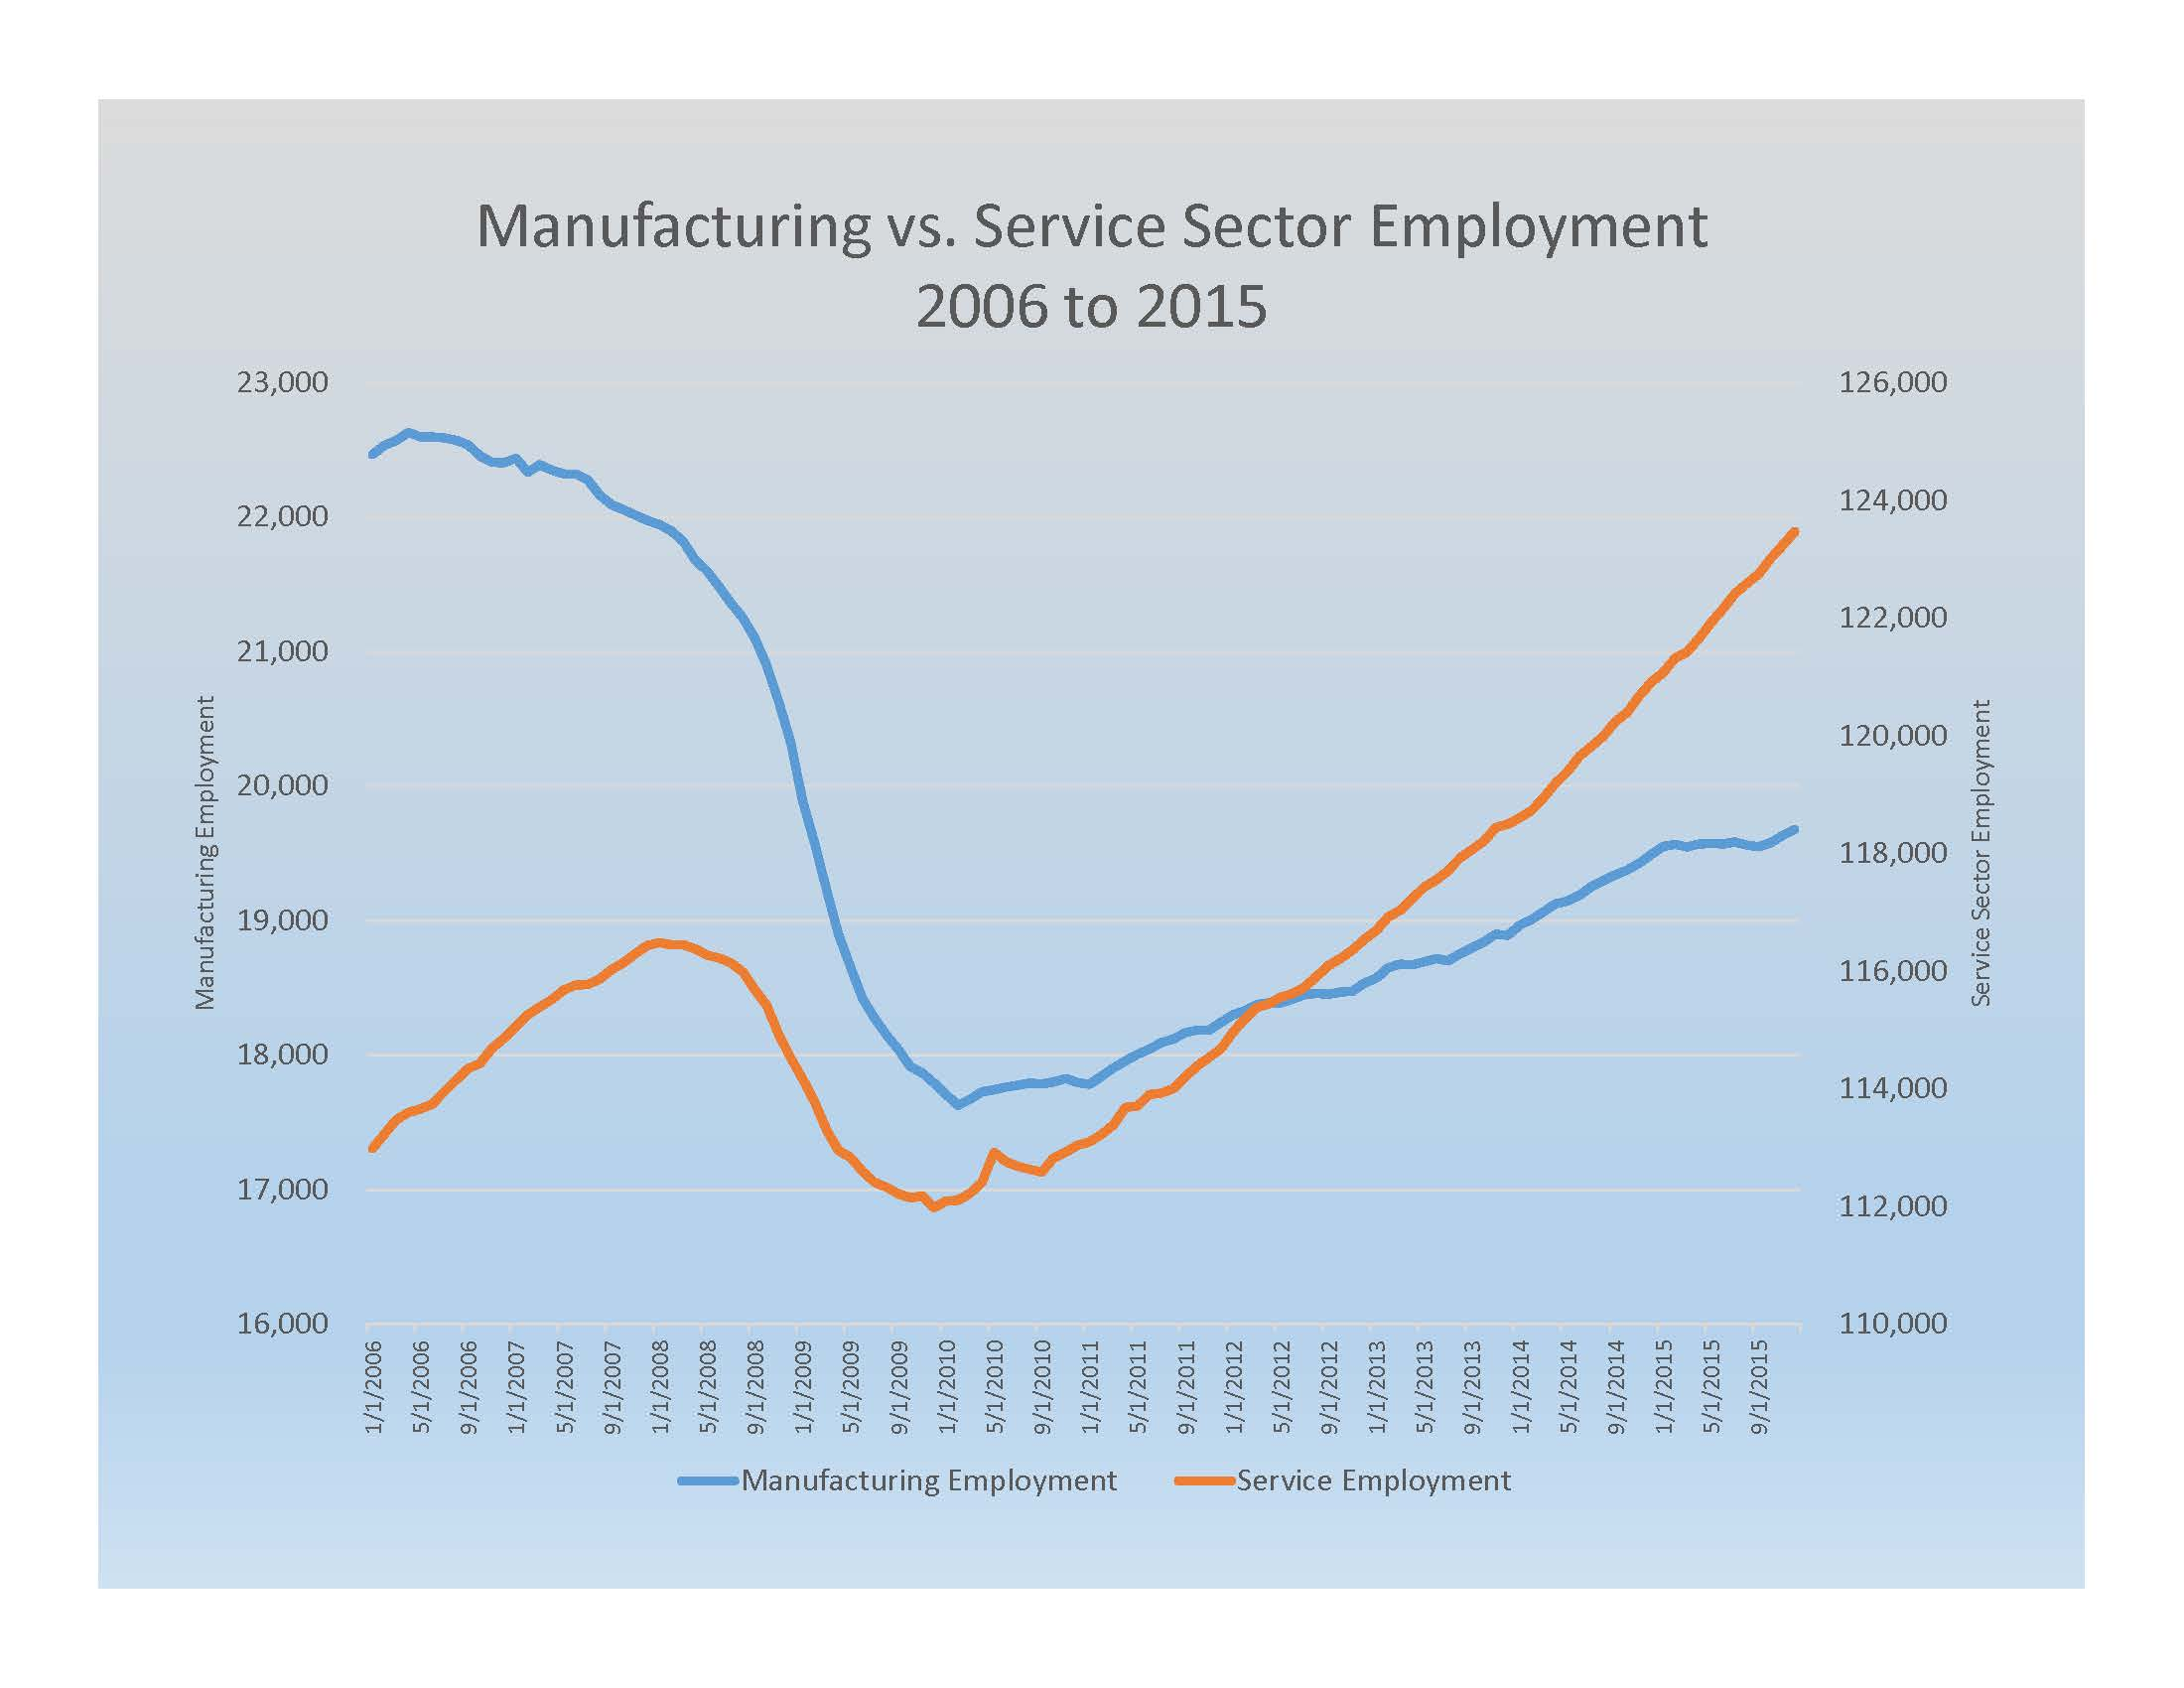 Manufacturing vs. Service Sector Employment 2006 to 2015